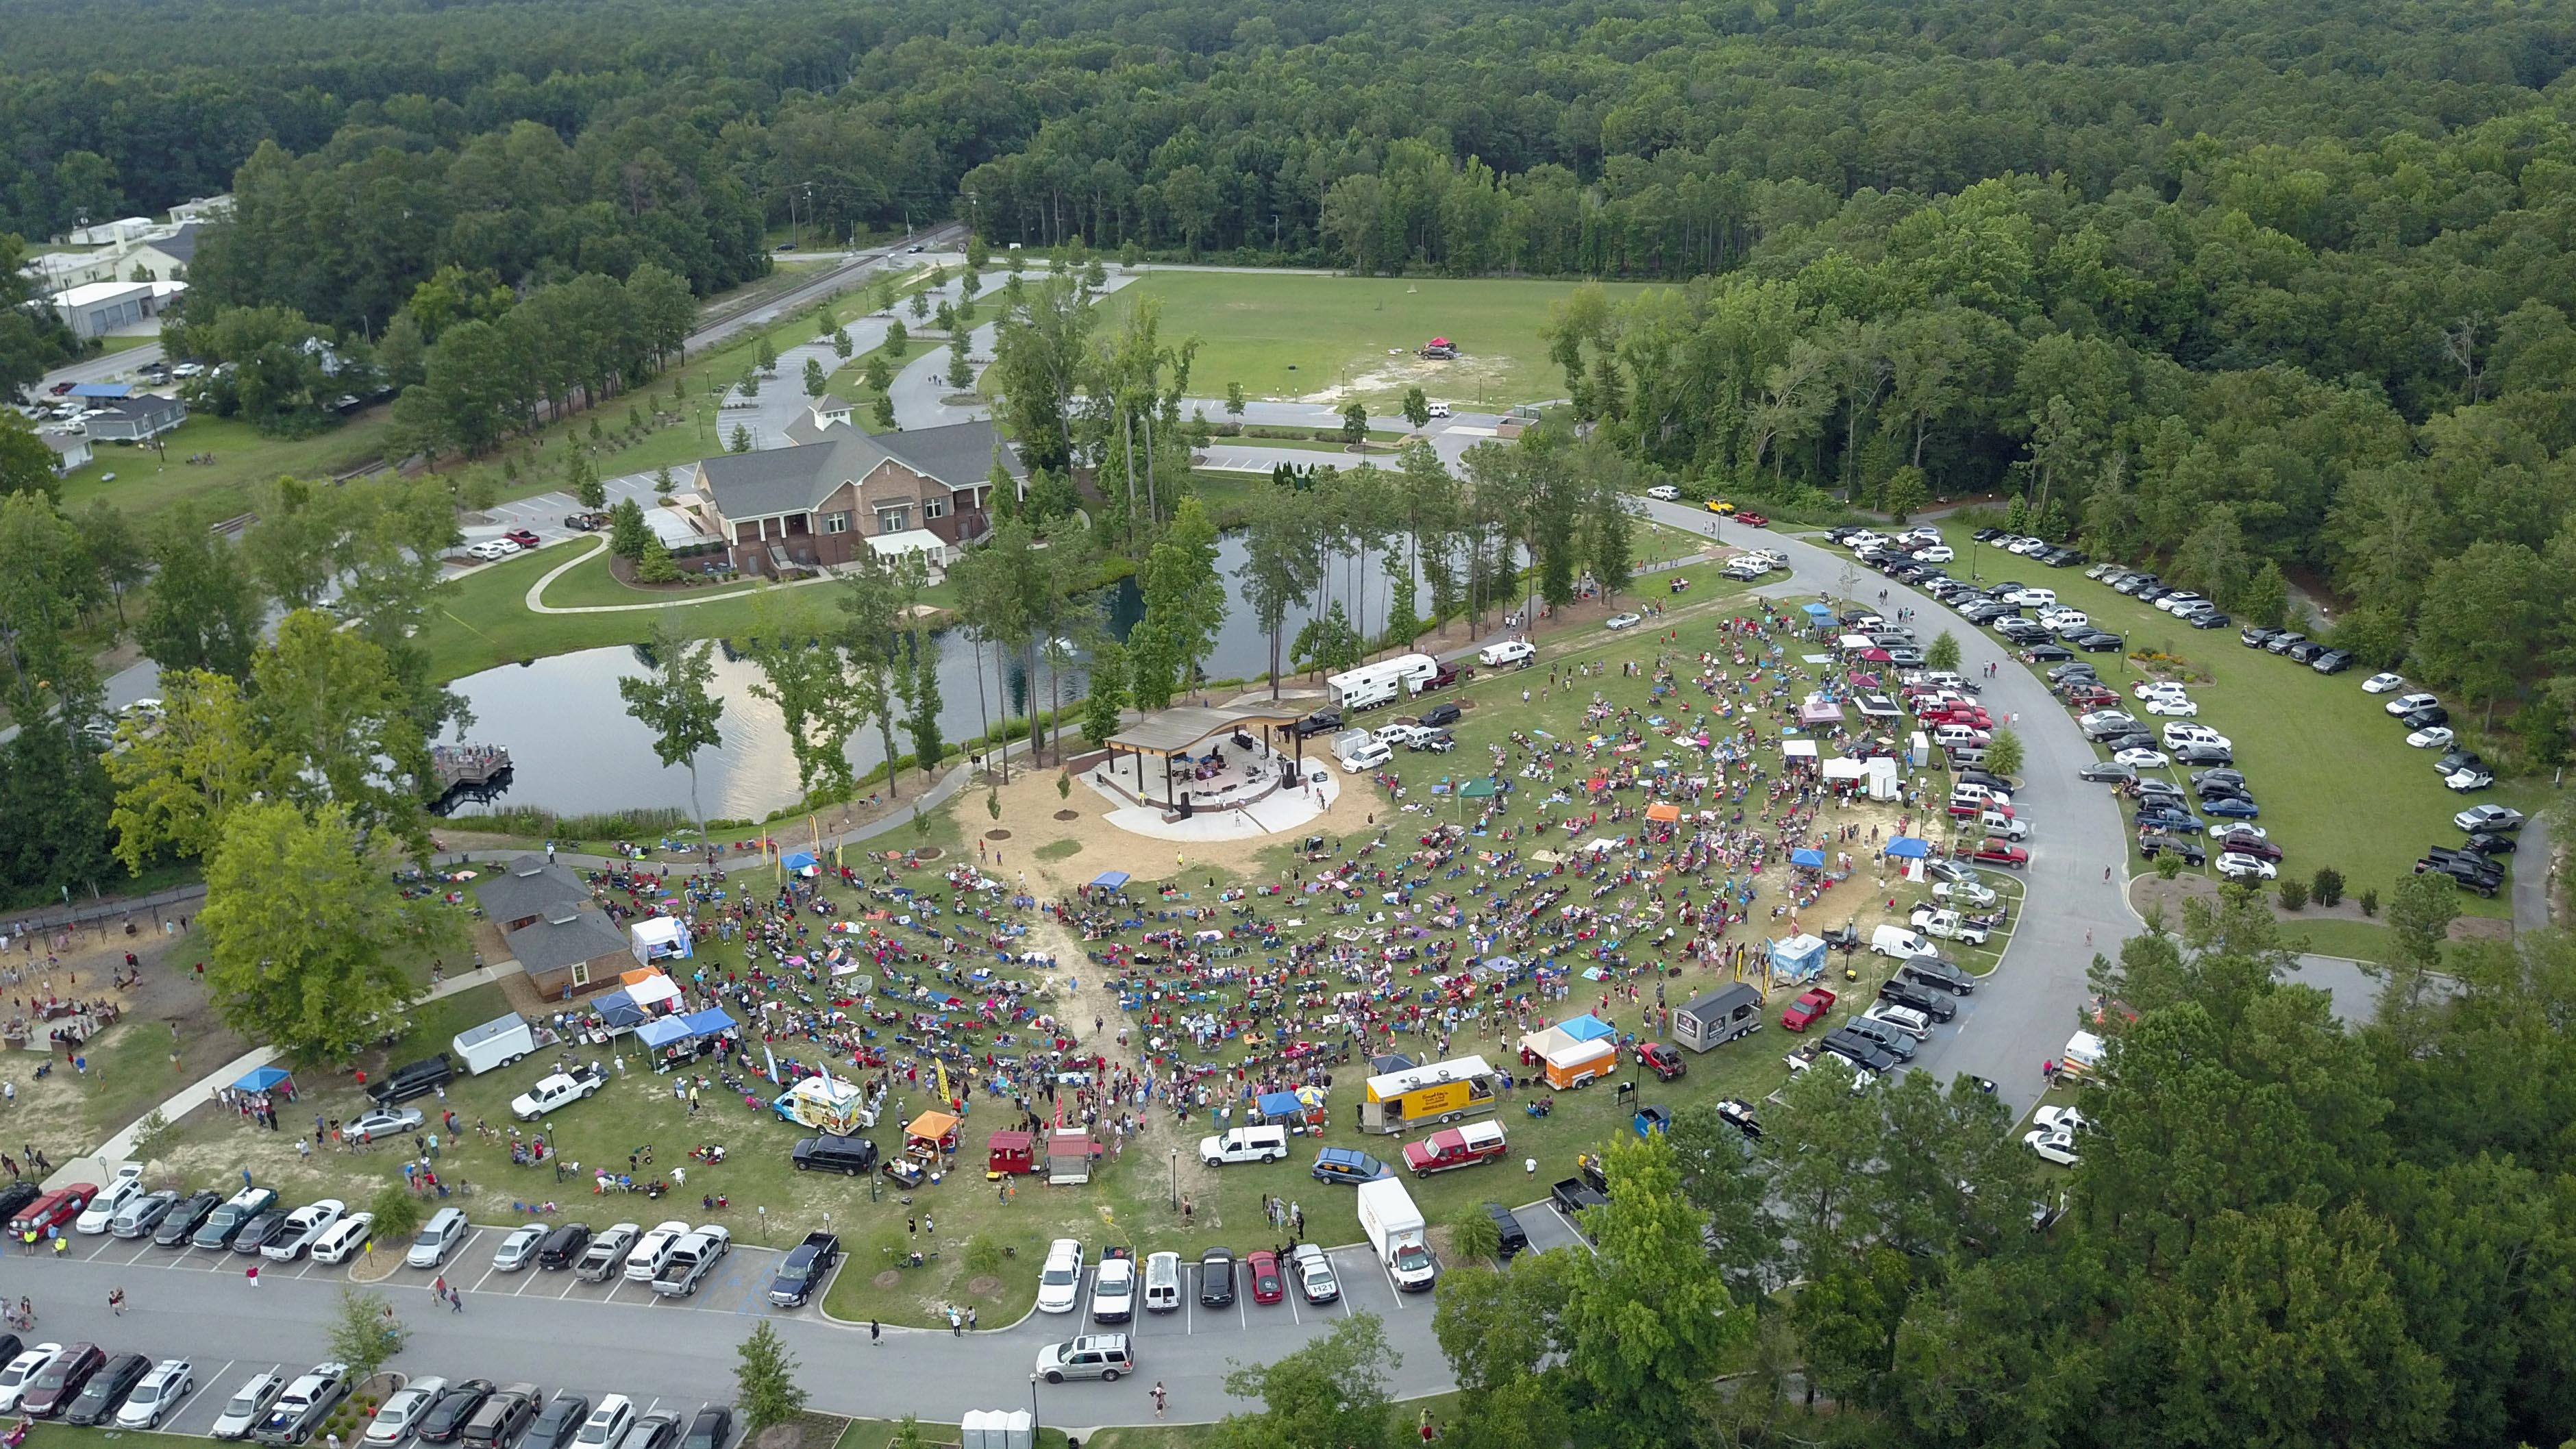 20170703-Aerial Amphitheater-6 Treetop Photography